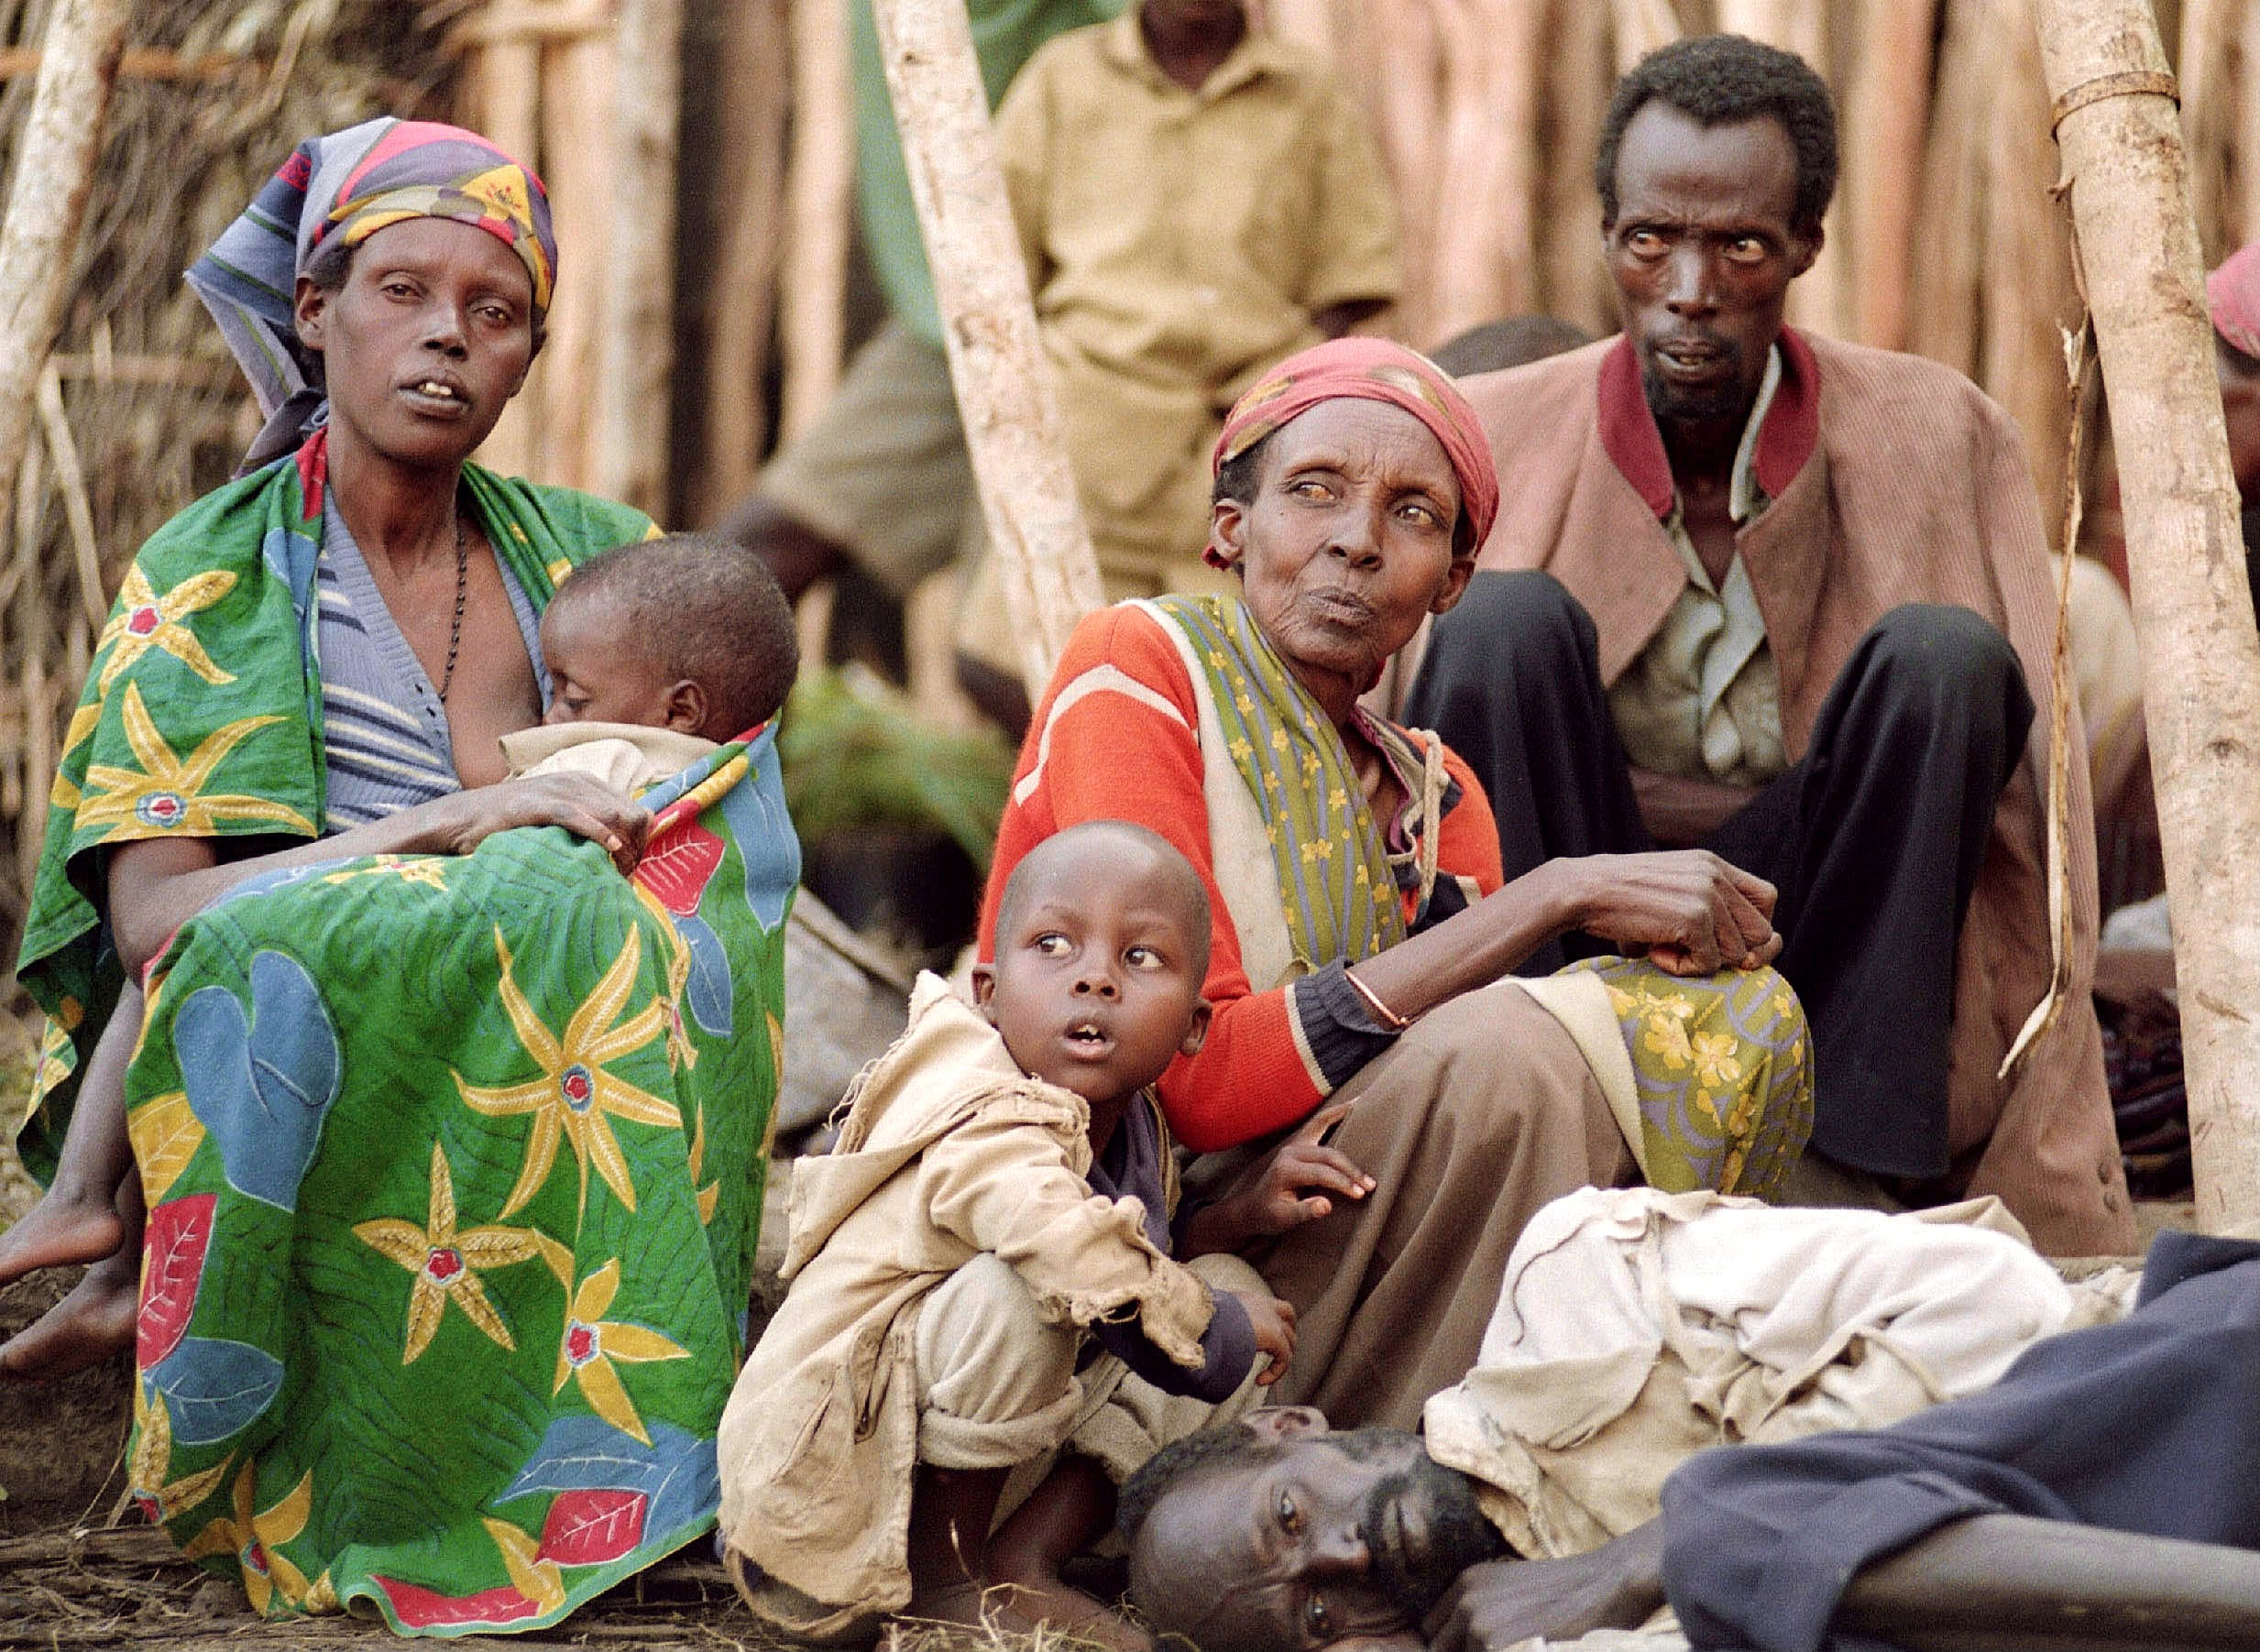 an overview of rwandas history and culture Since the early 1960s, the peoples of rwanda and burundi have lived through some of the worst violence in african history the killings are usually called ethnic warfare between the hutu and tutsi.